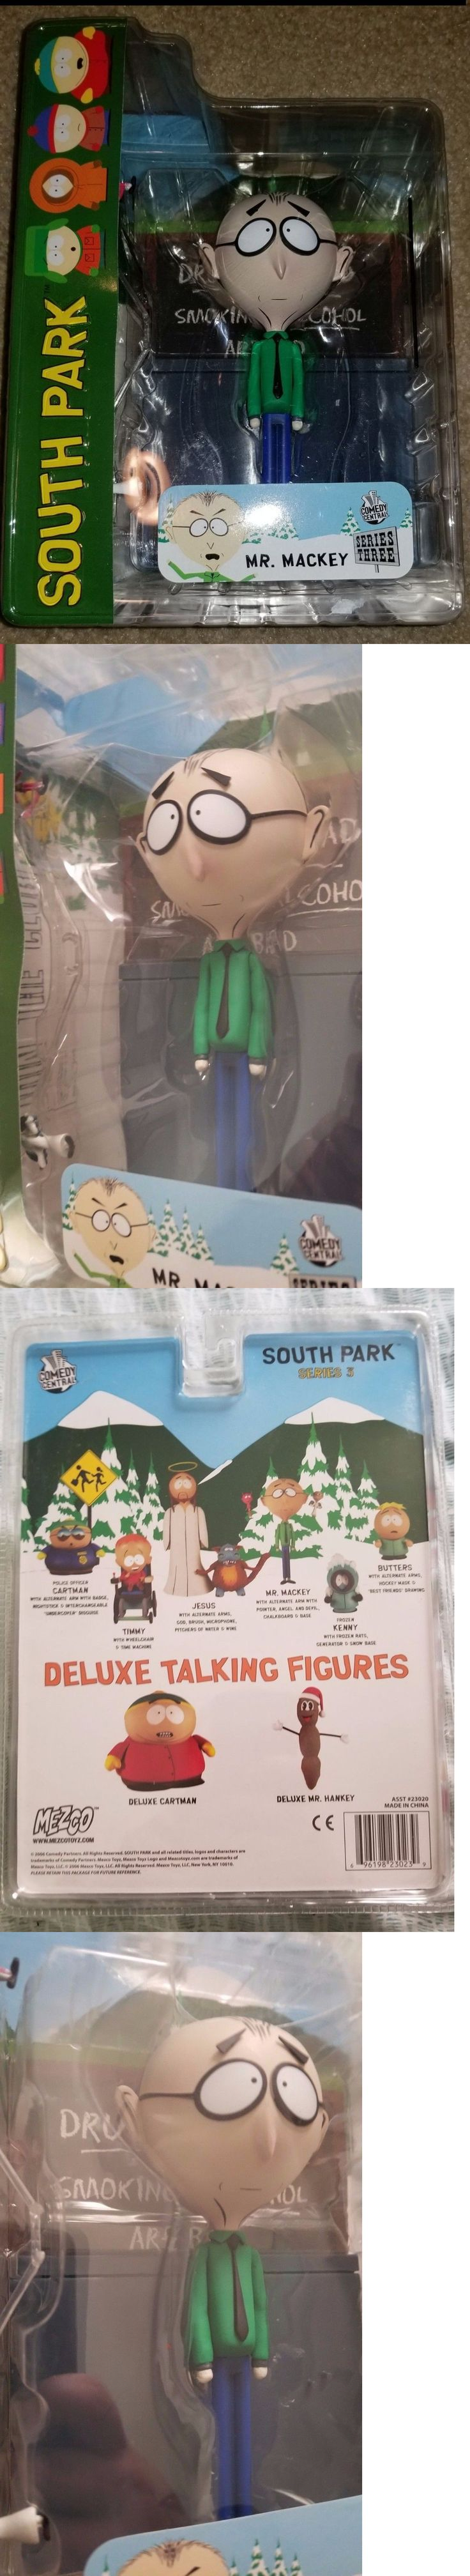 South Park 20918: South Park Series 3 Mr. Mackey Figure Collectible Mezco Nip Sealed -> BUY IT NOW ONLY: $30.88 on eBay!